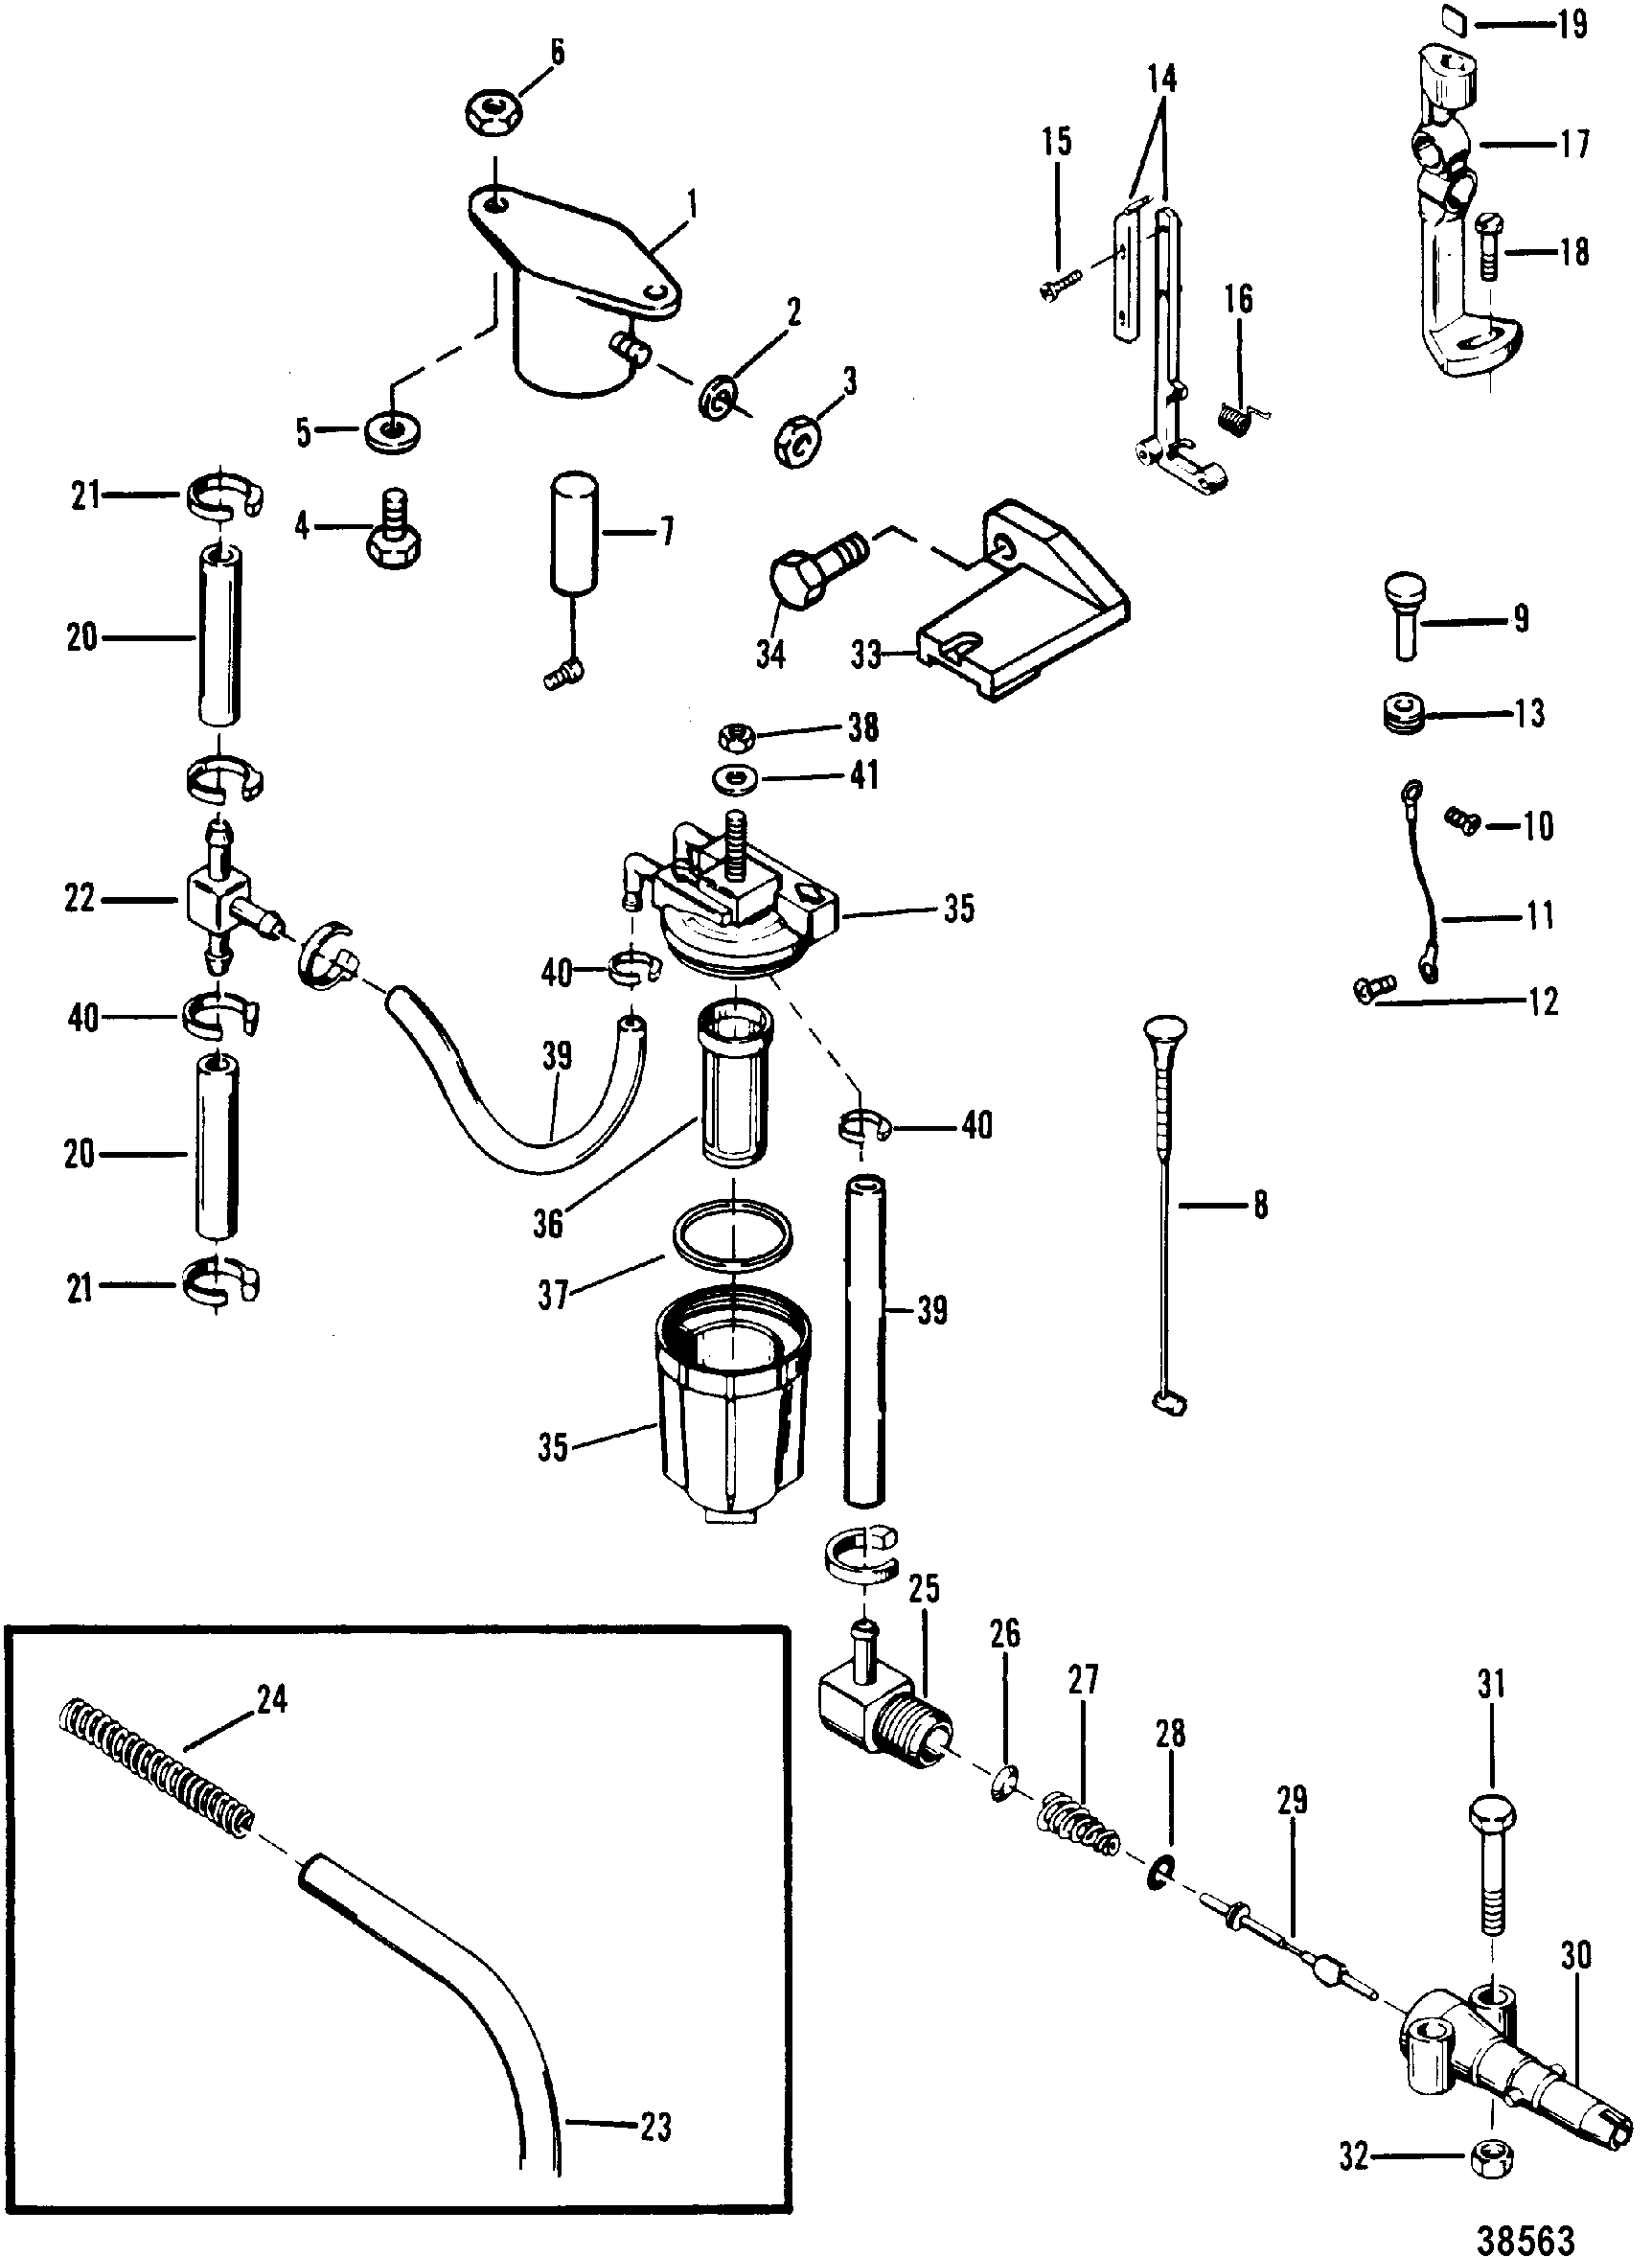 50 Horsepower Mercury Outboard Diagram